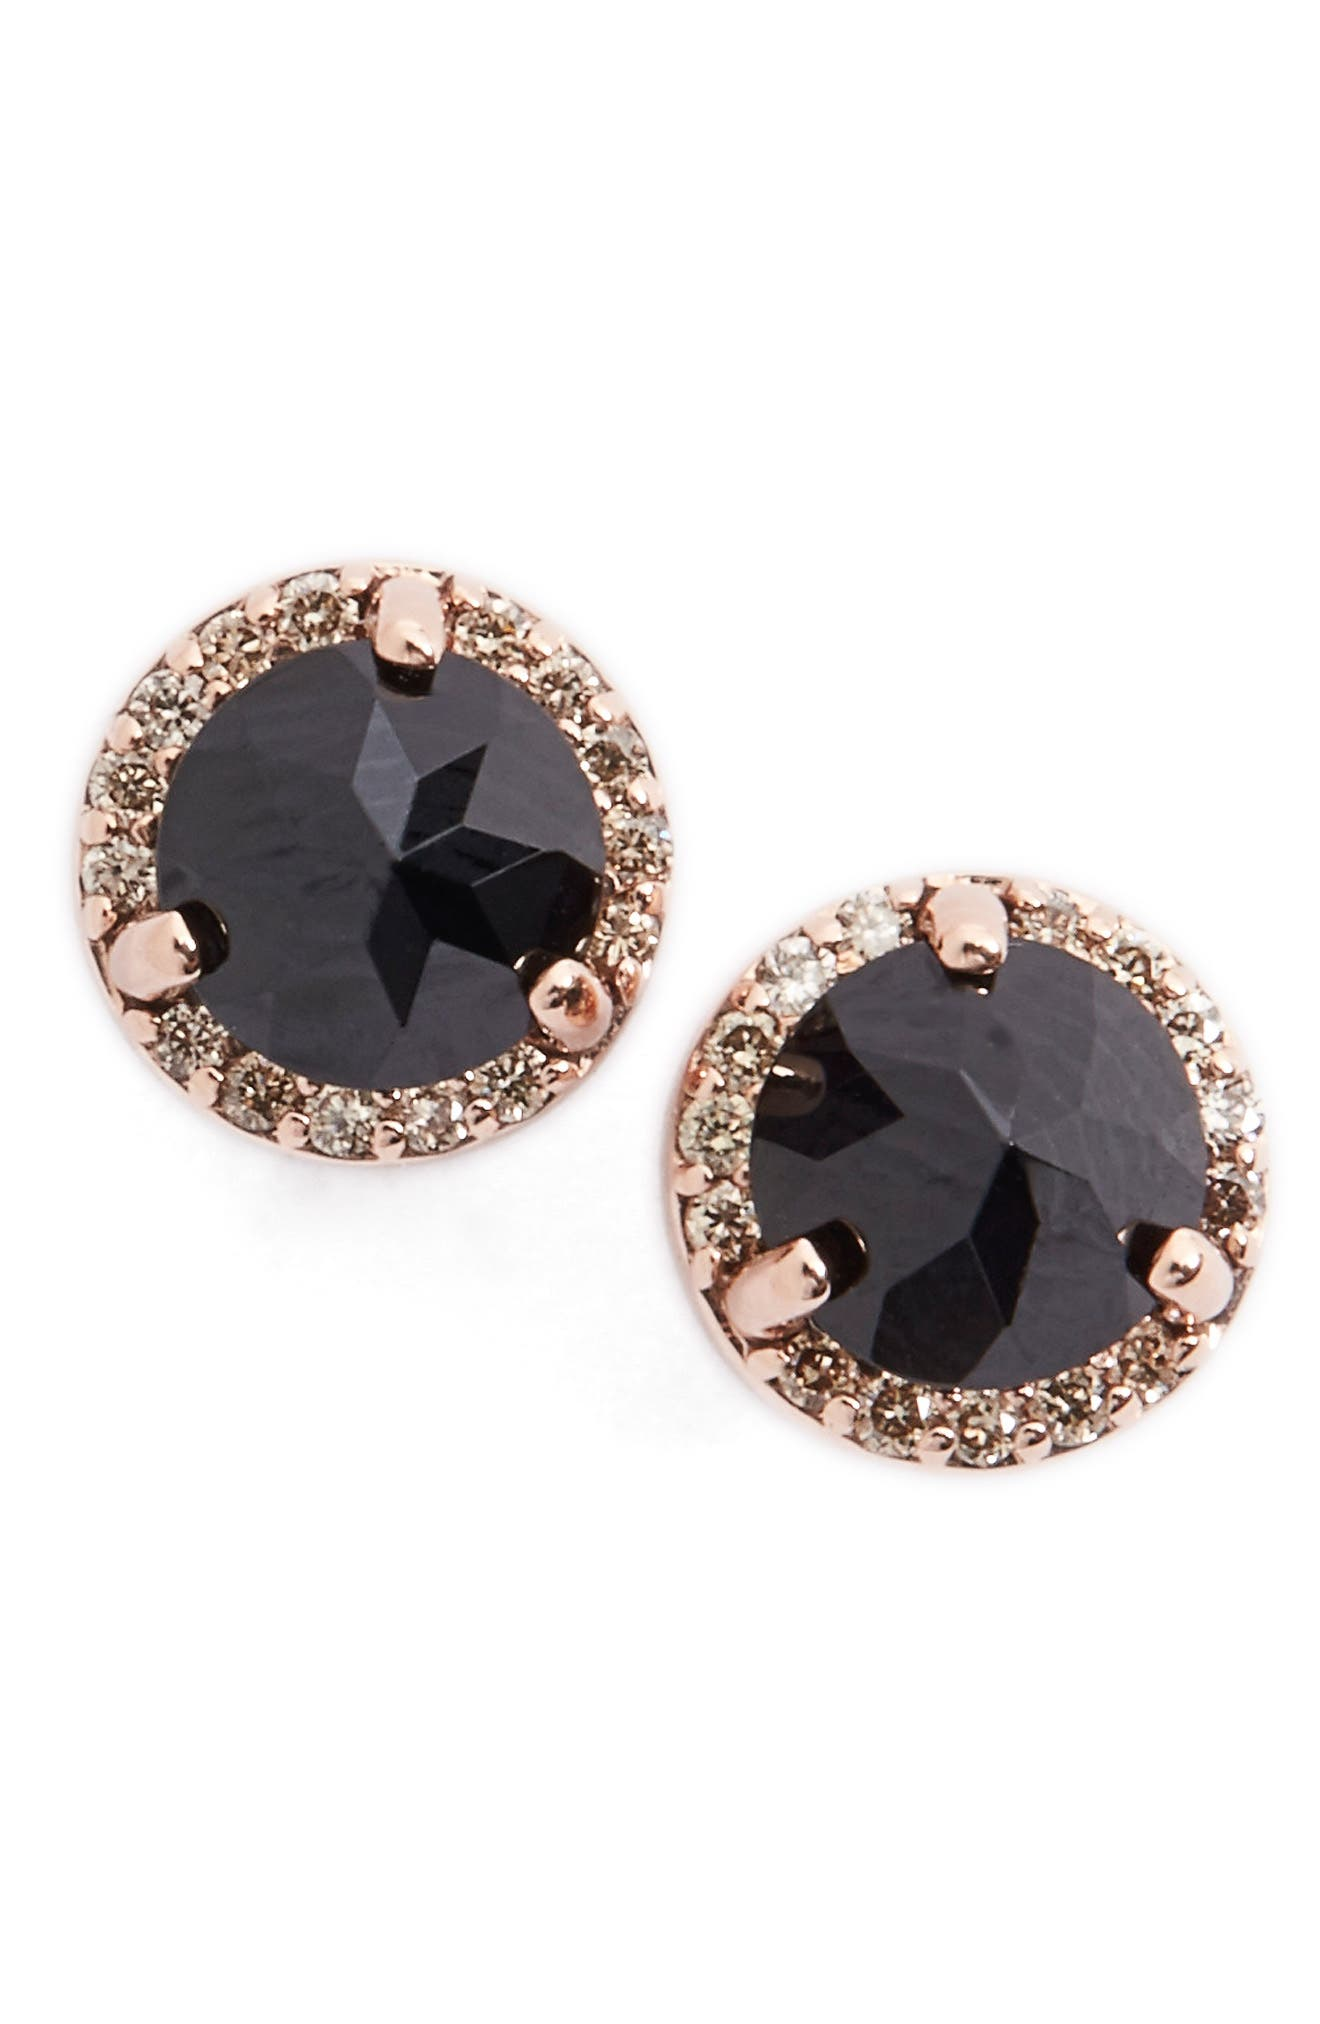 Anna Sheffield Black Spinel & Champagne Diamond Rosette Stud Earrings